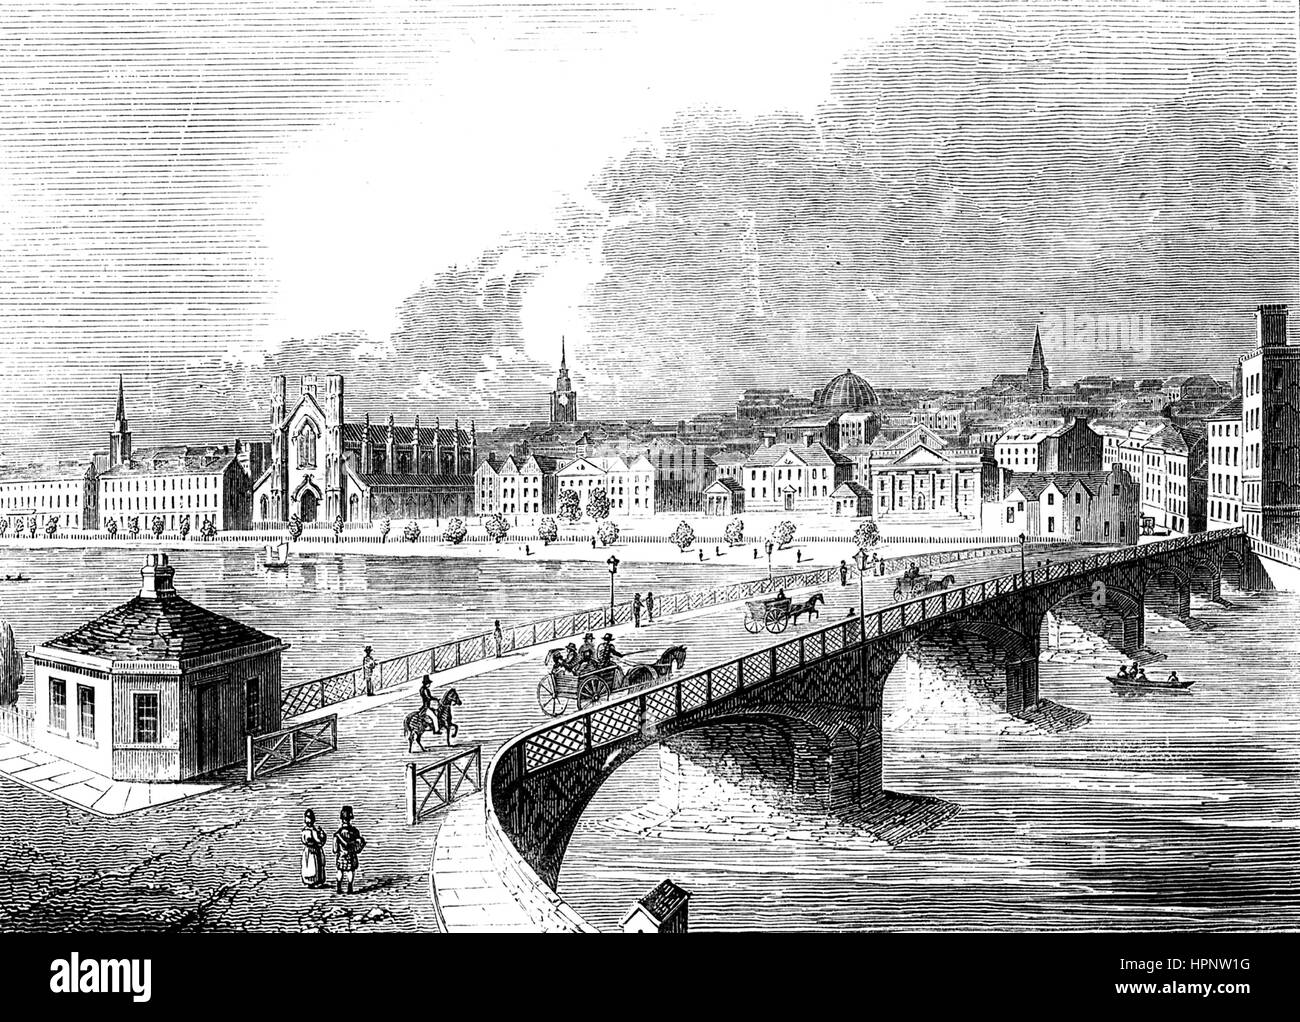 STOCKWELL BRIDGE over the River Clyde, Glasgow, about 1820. Demolished in 1847 - Stock Image